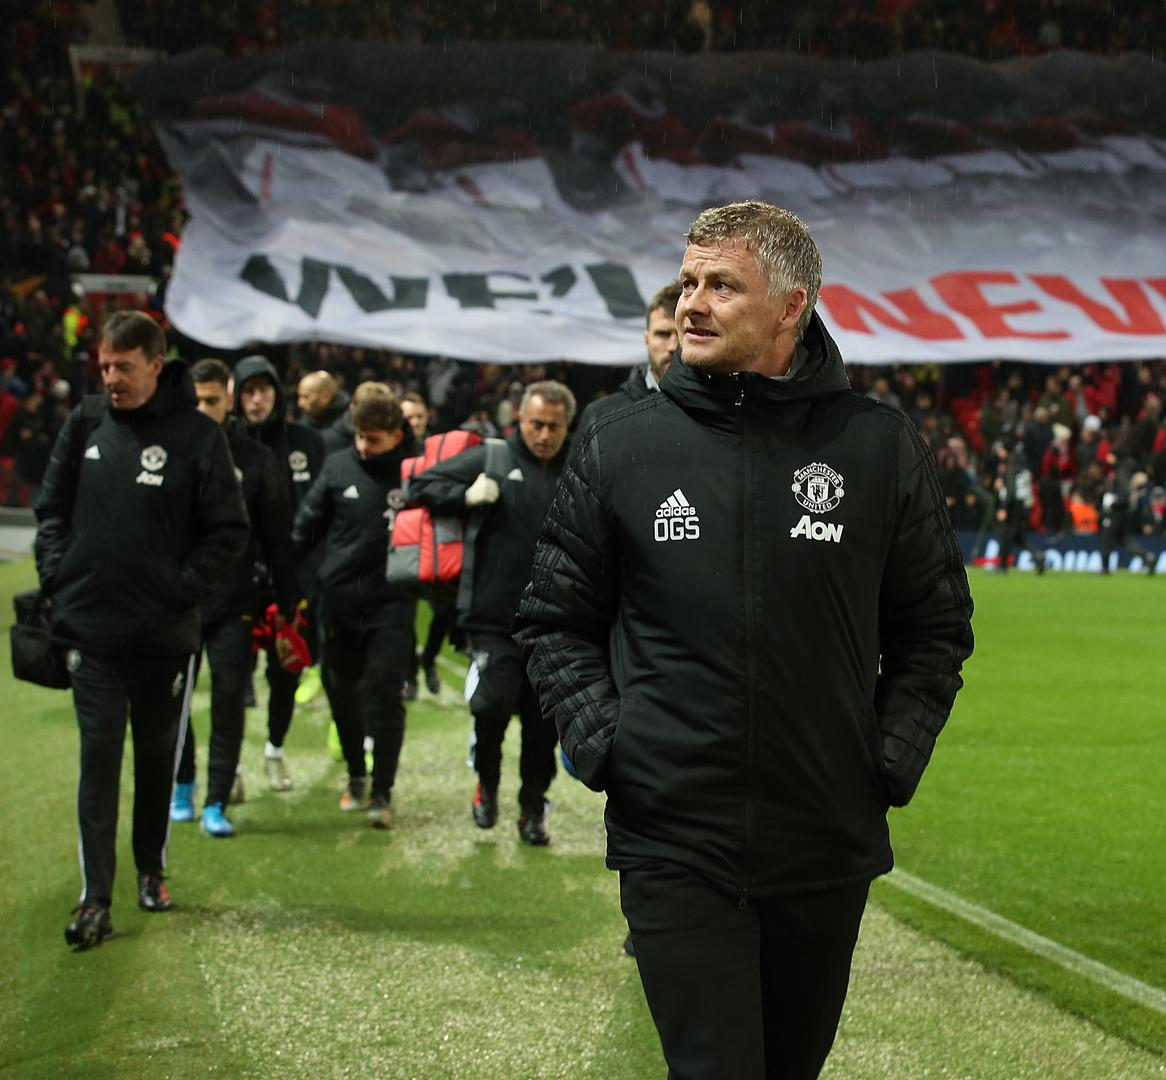 Ole Gunnar Solskjaer walks out for the Partiza@n Belgrade game at Old Trafford